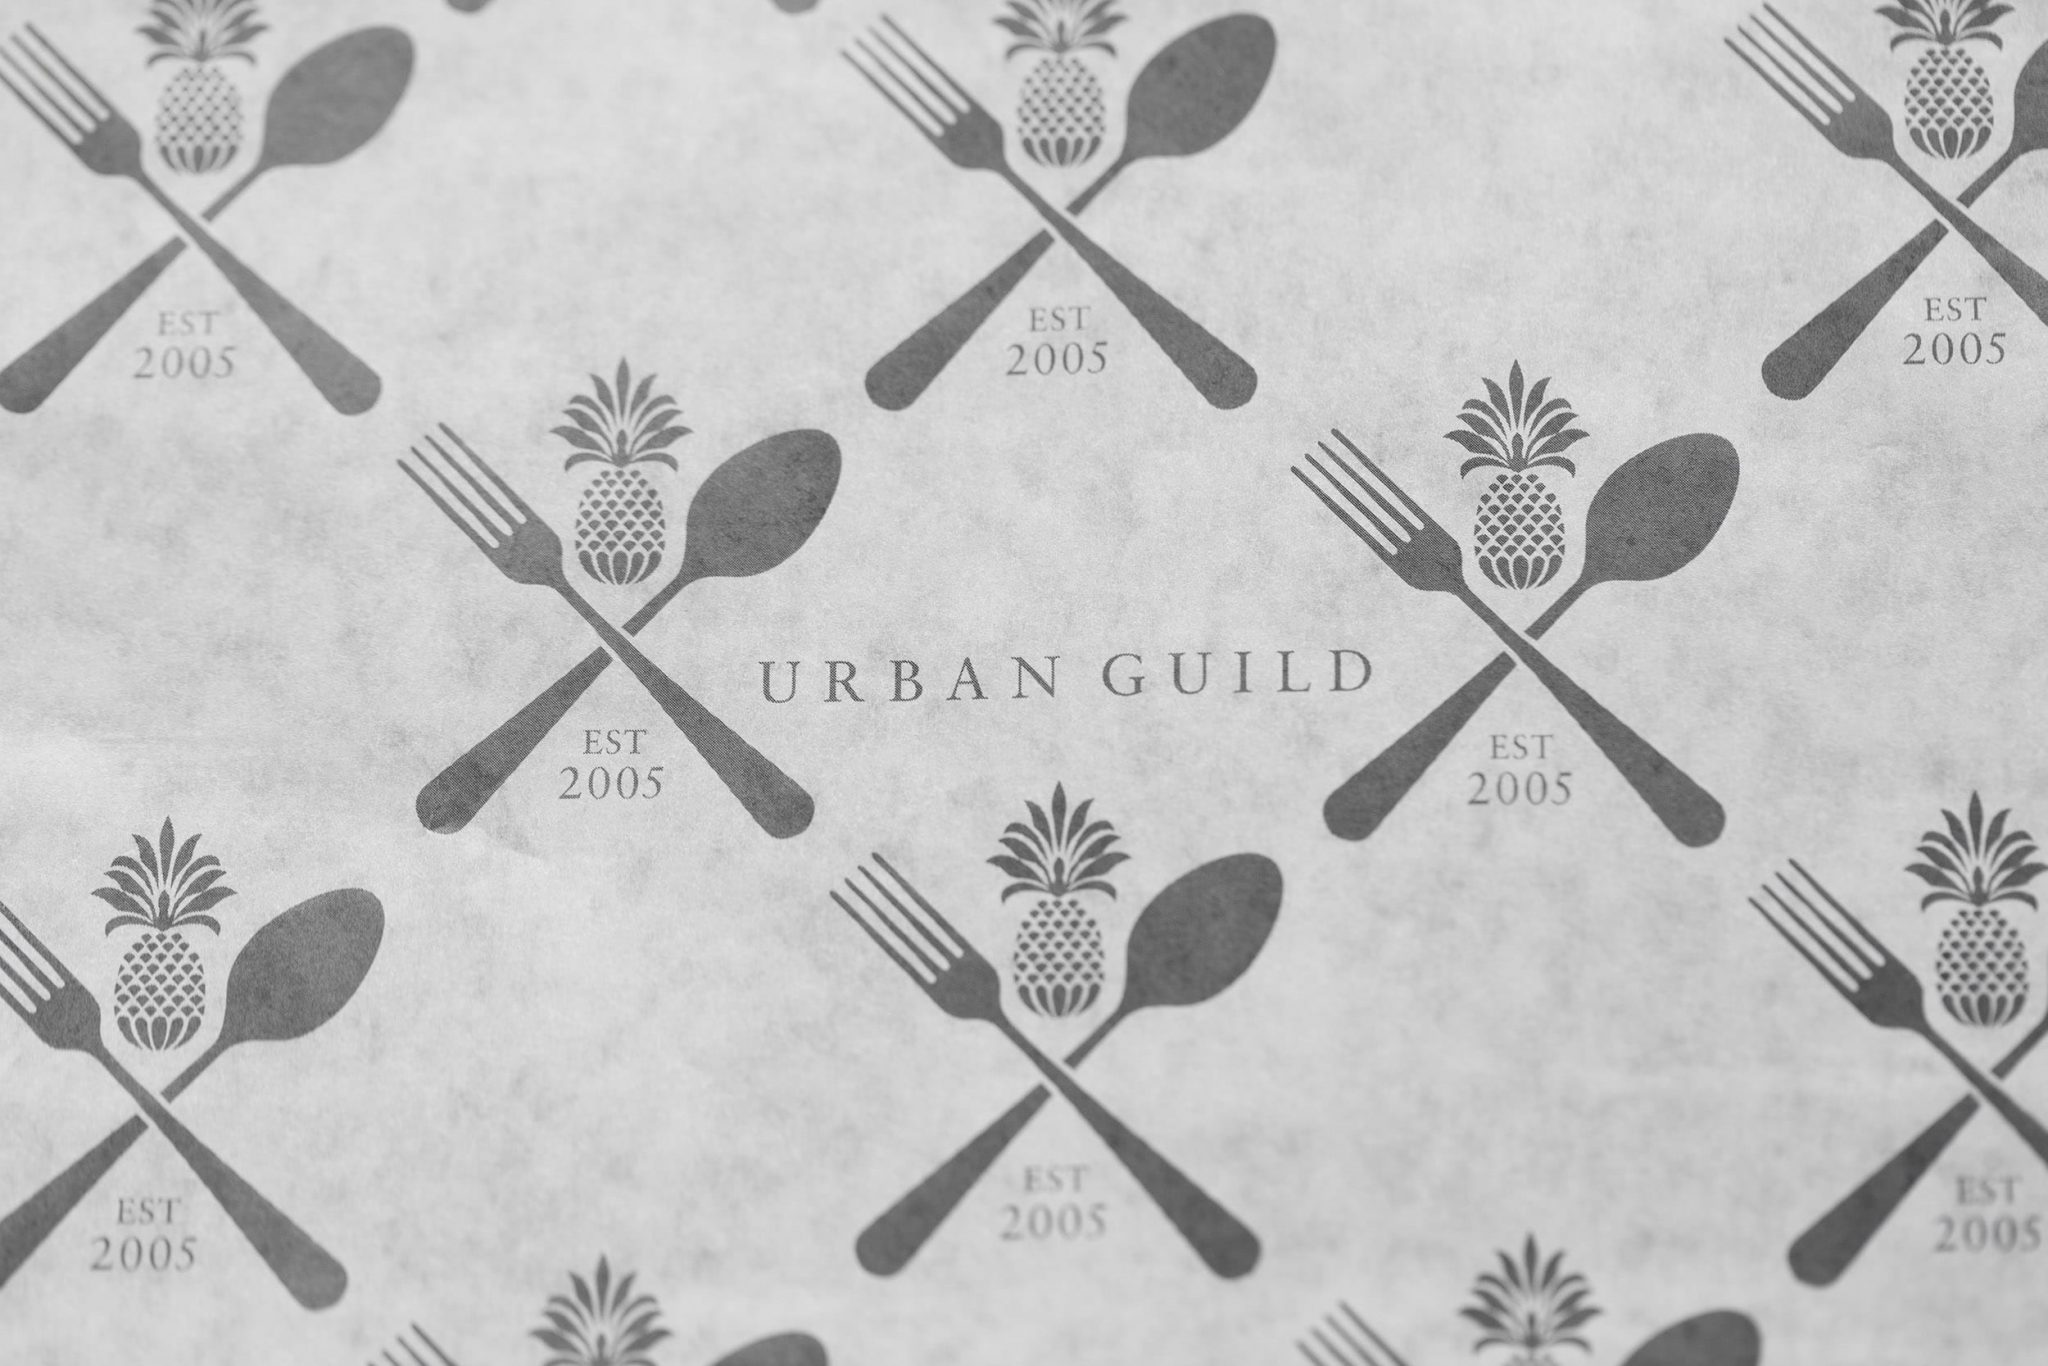 Urban Guild plate liners